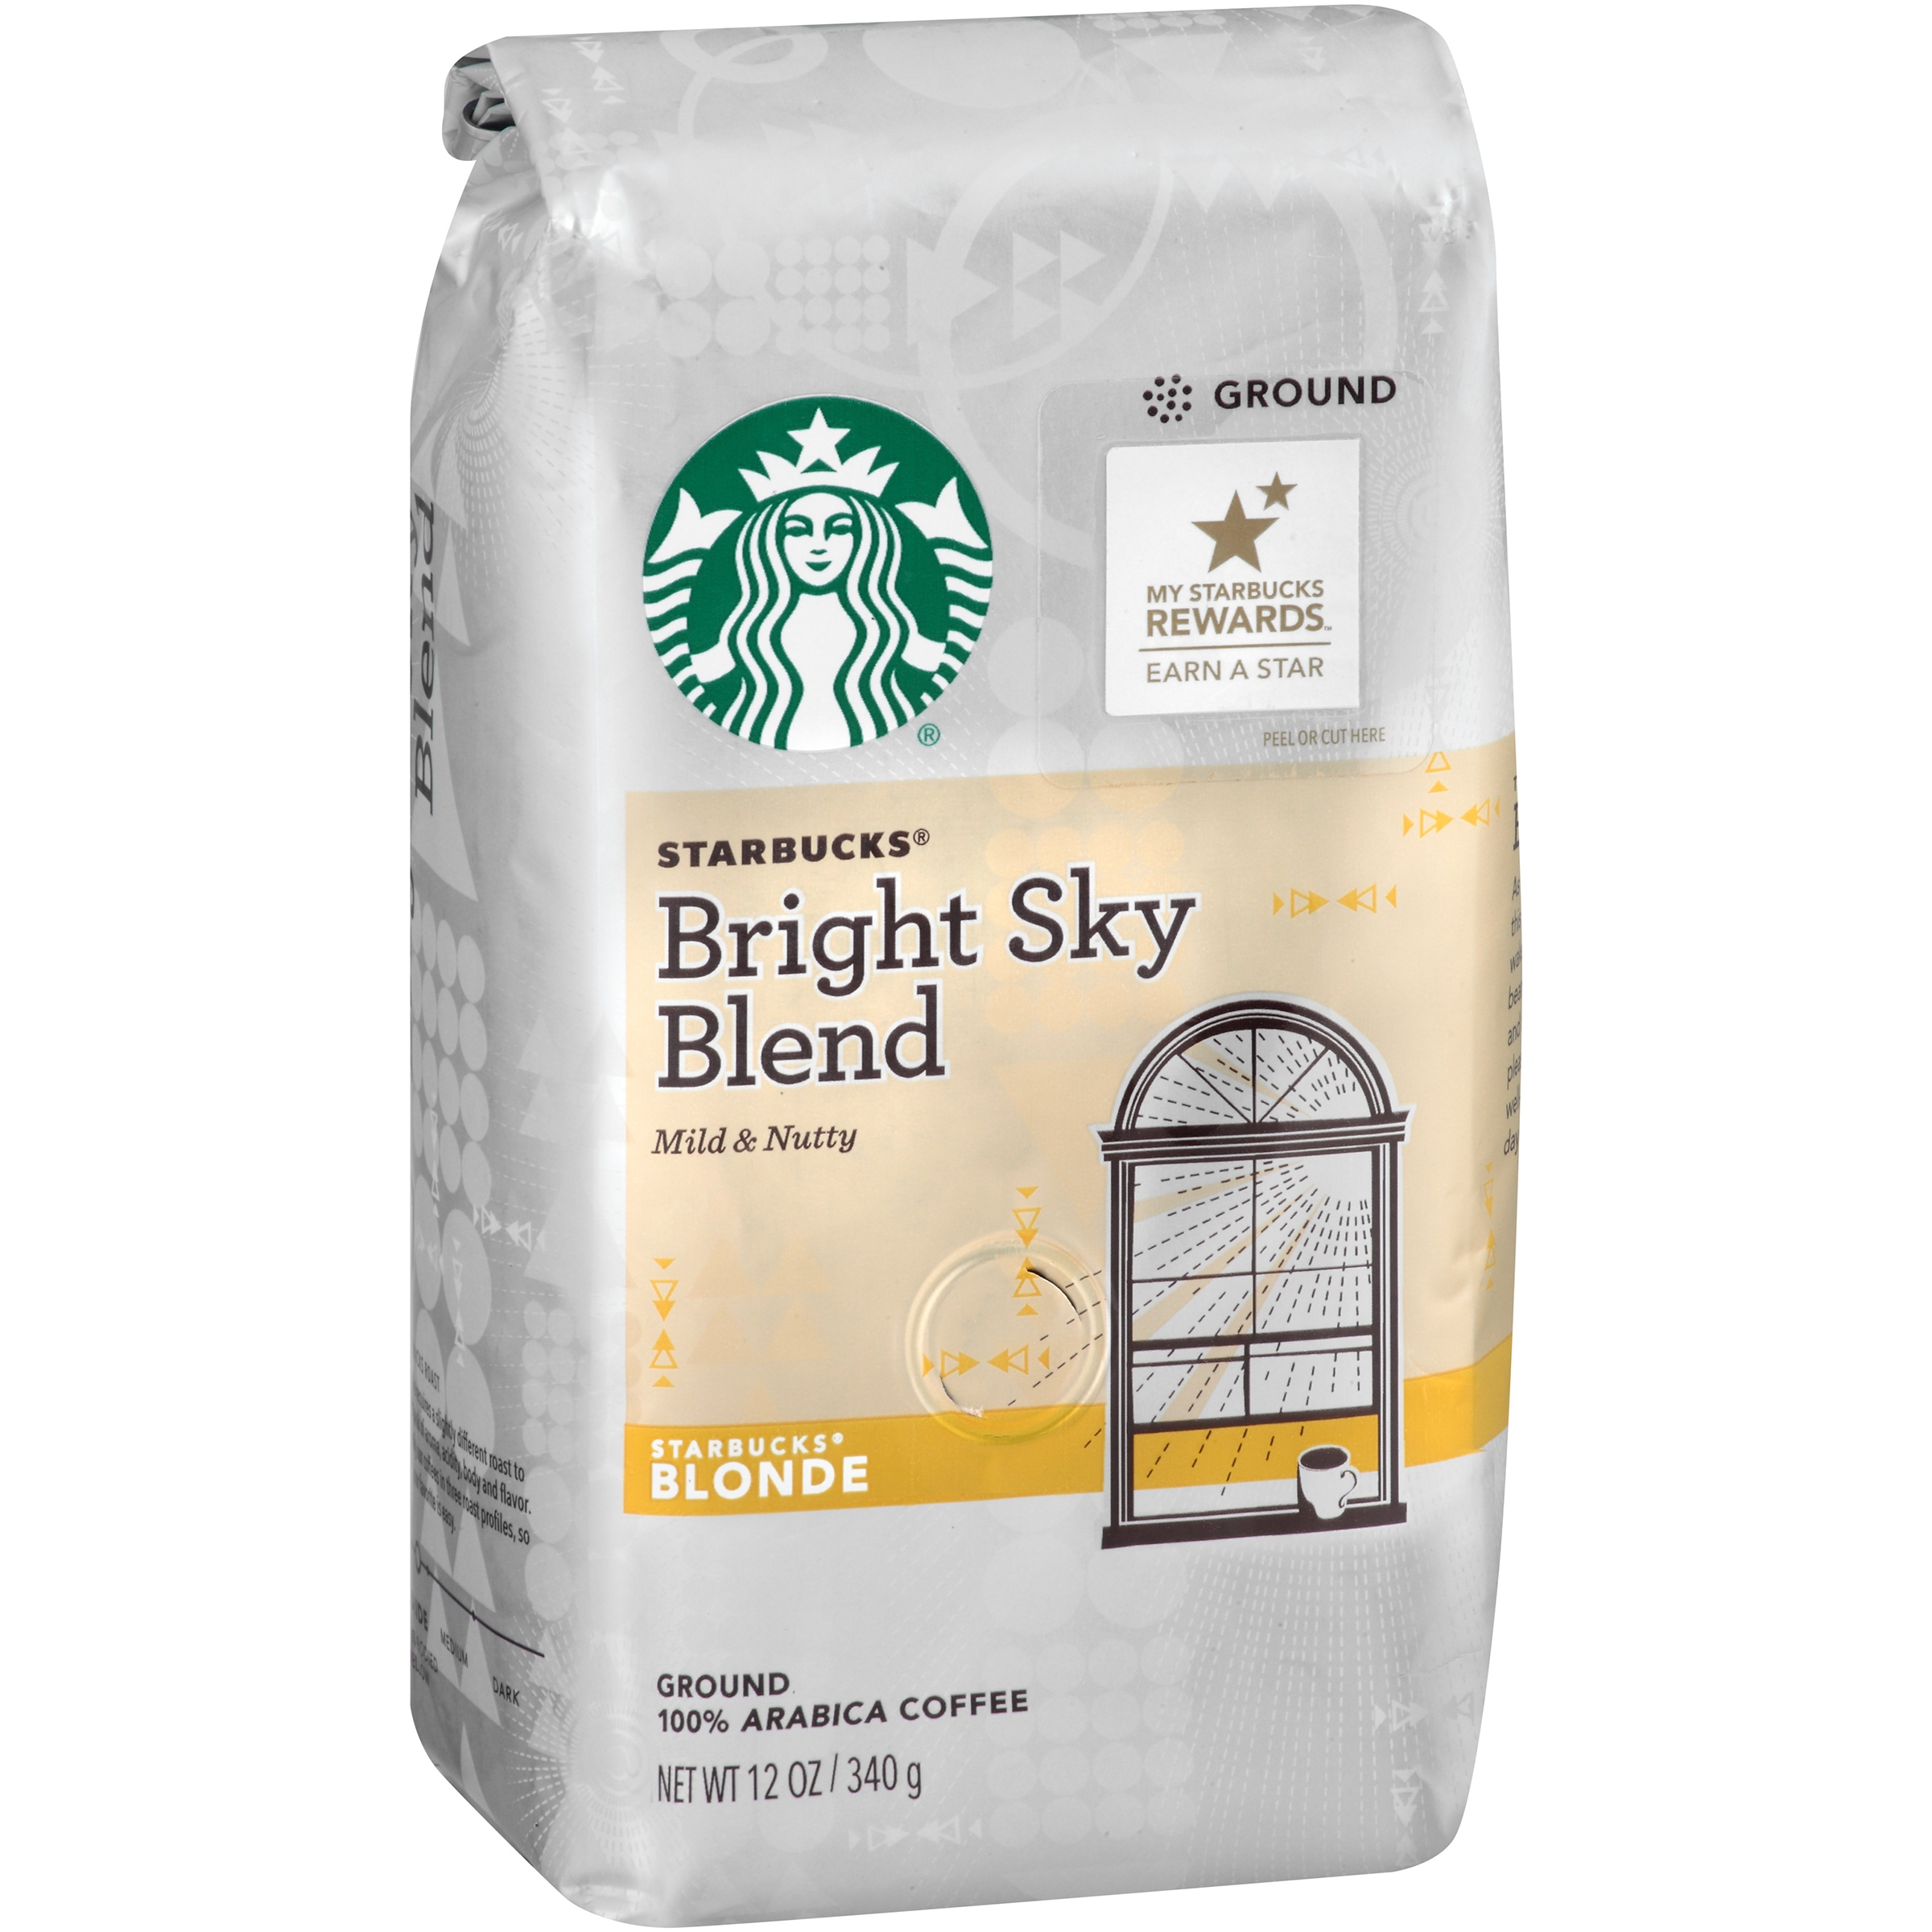 Starbucks Bright Sky Blend Blonde Roast Ground Coffee 12 oz. Bag by STARBUCKS COFFEE COMPANY